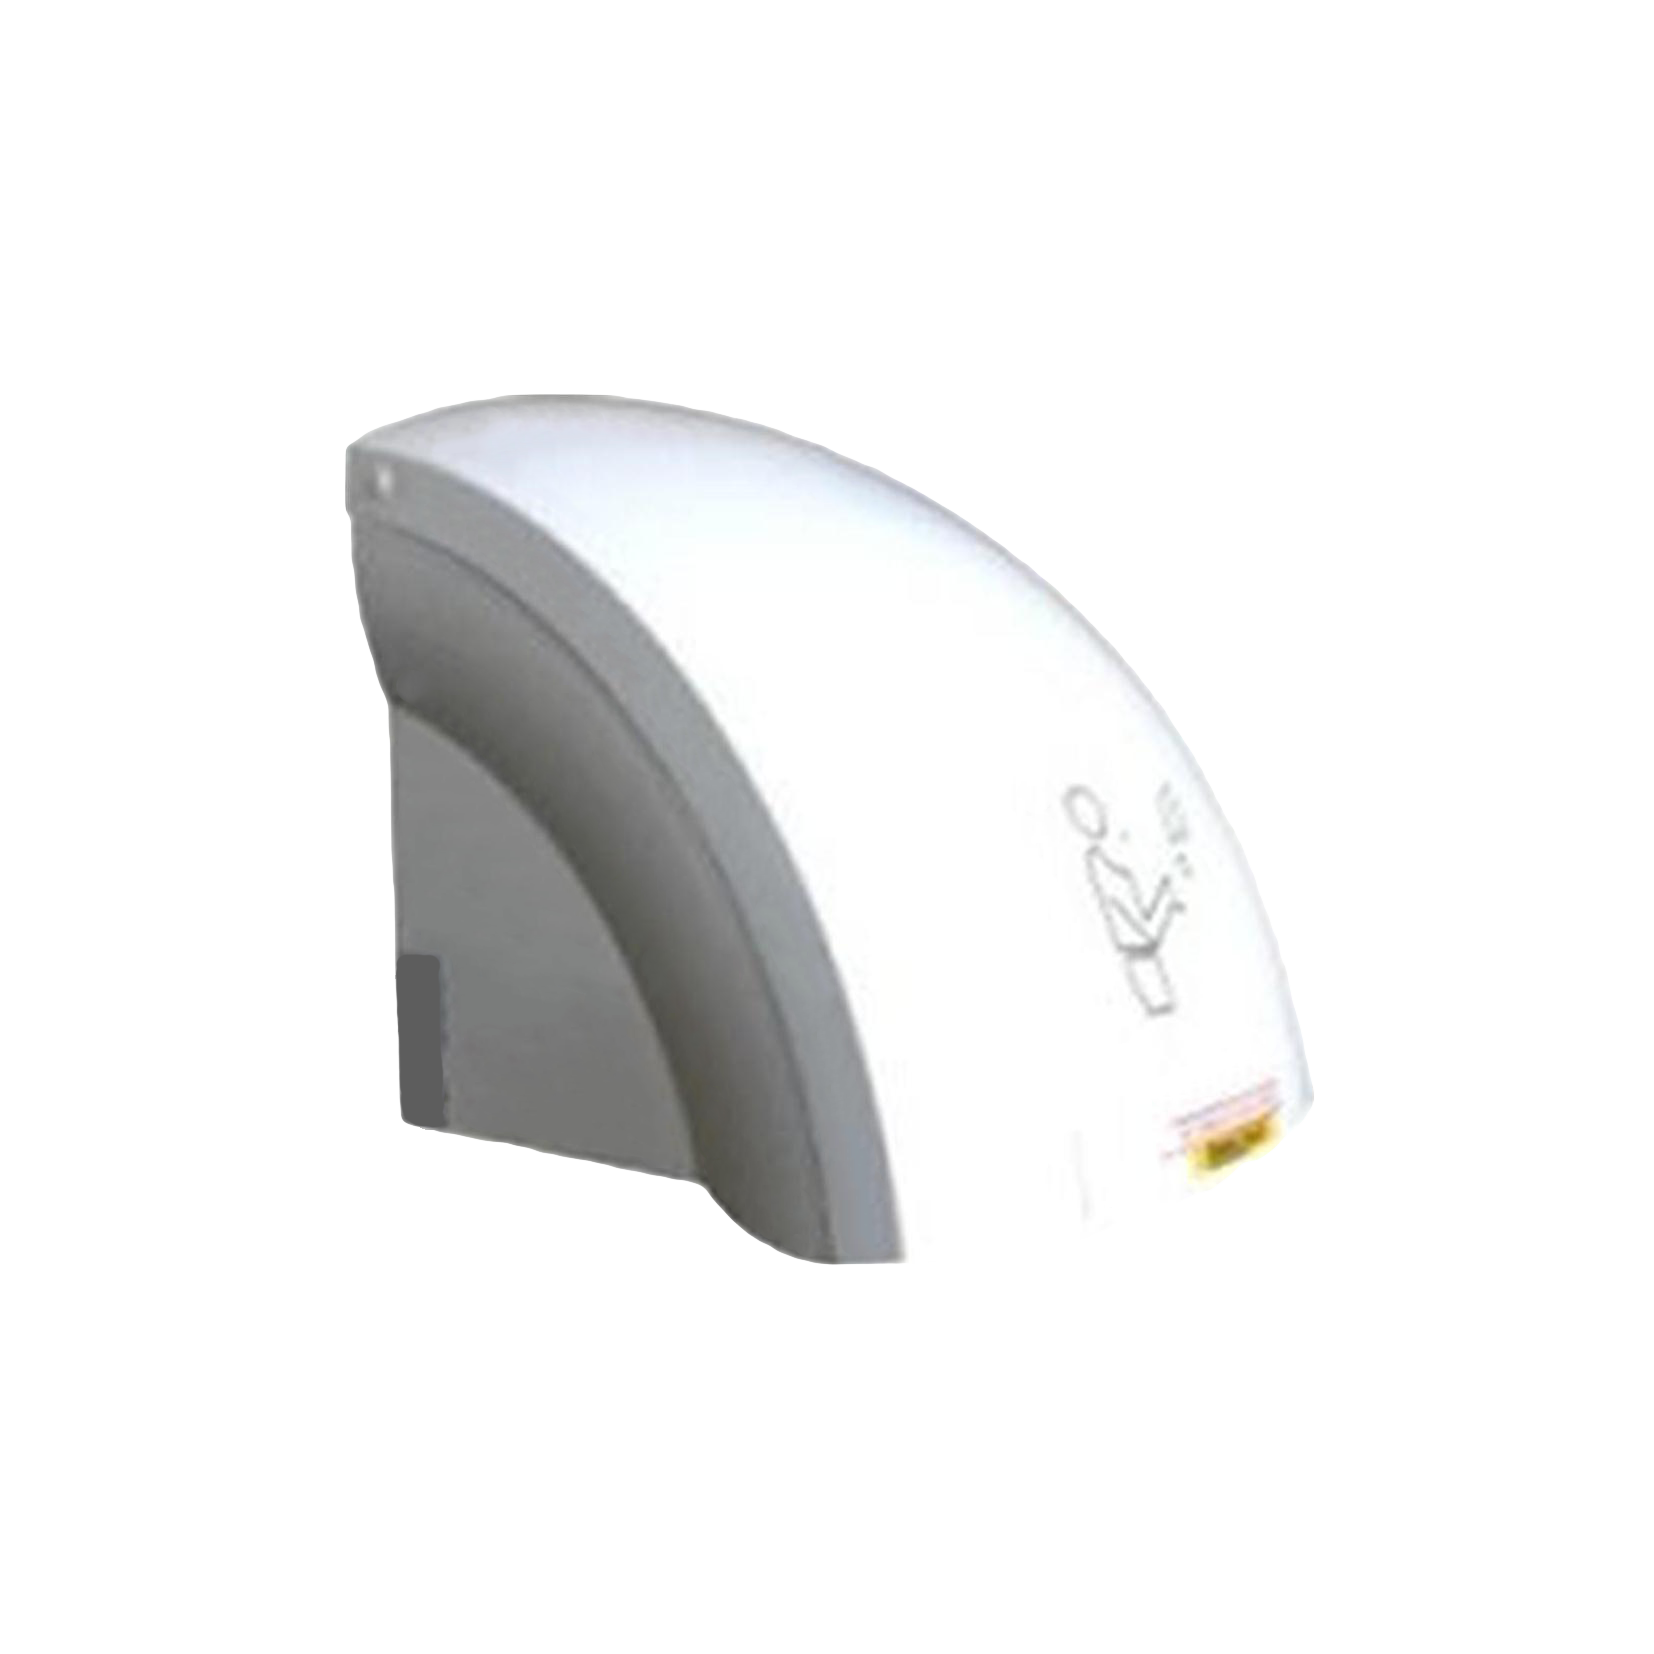 Hectoserve Golden touch hand dryer